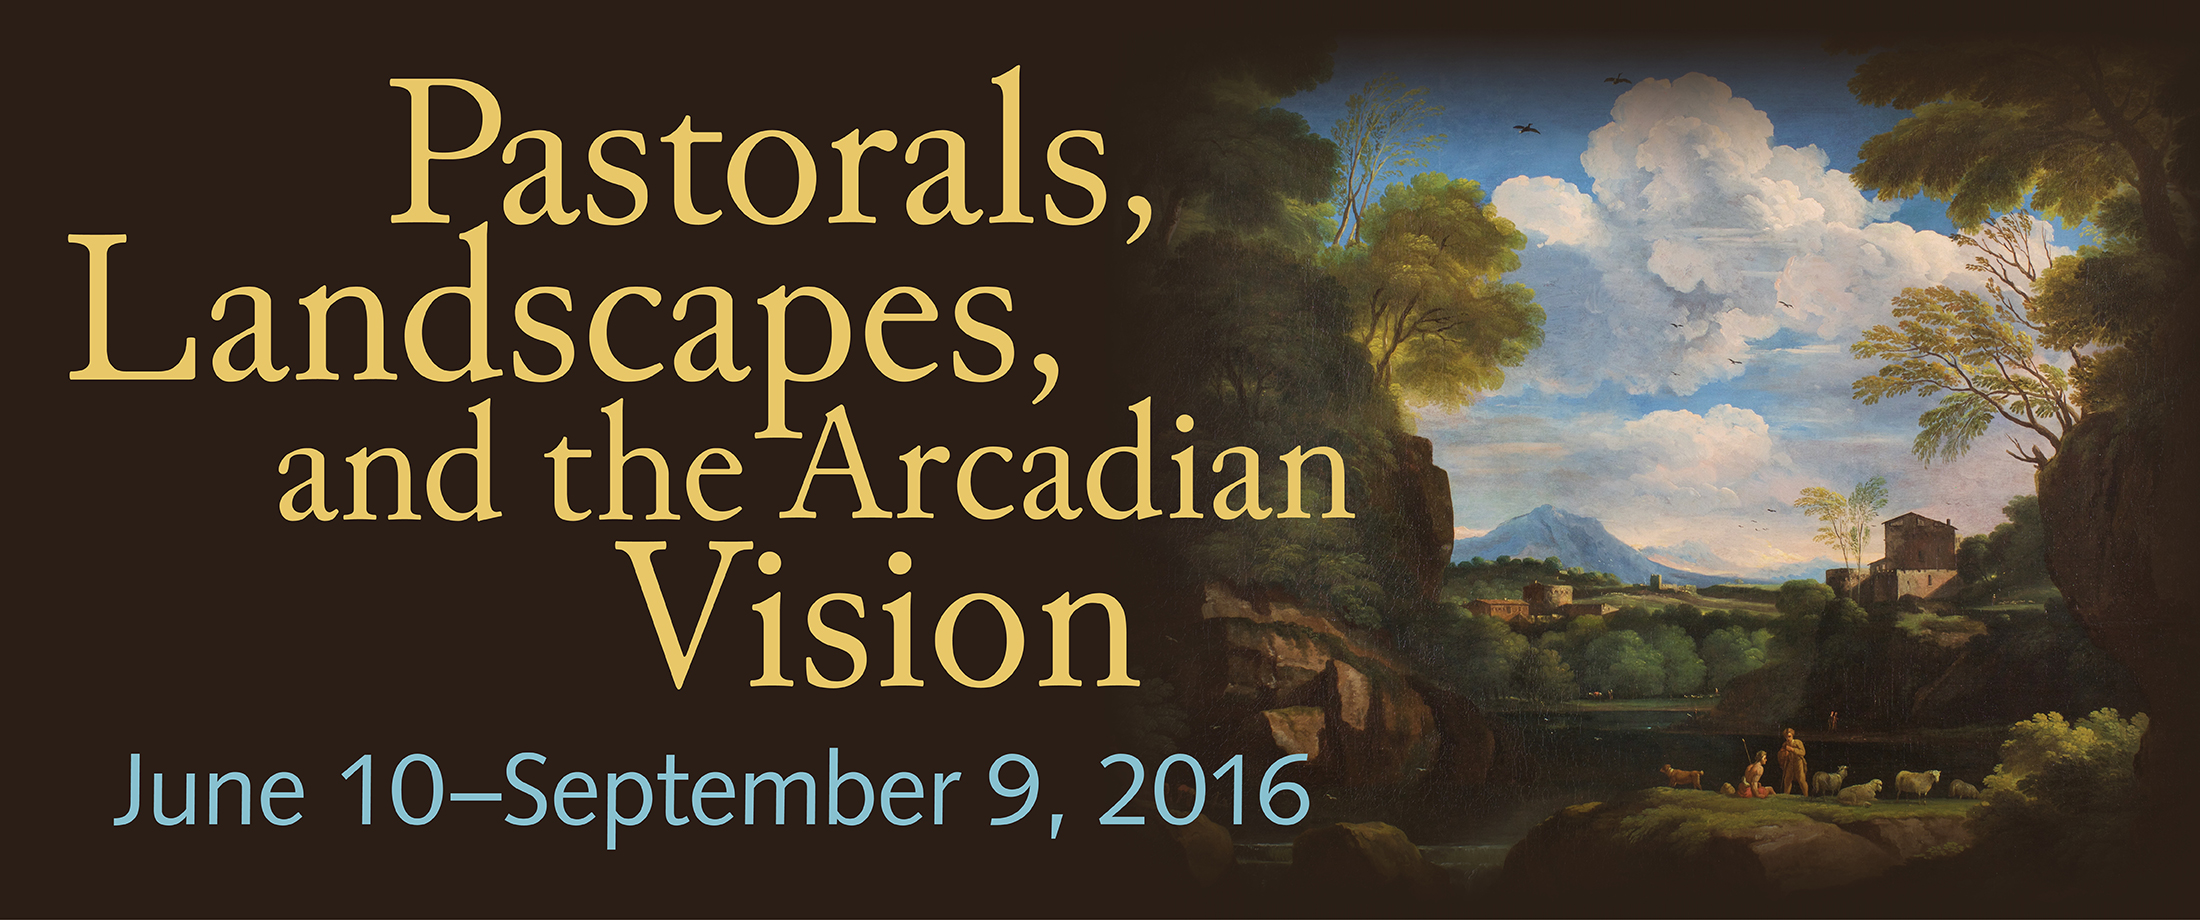 Pastorals, Landscapes, and the Arcadian Vision